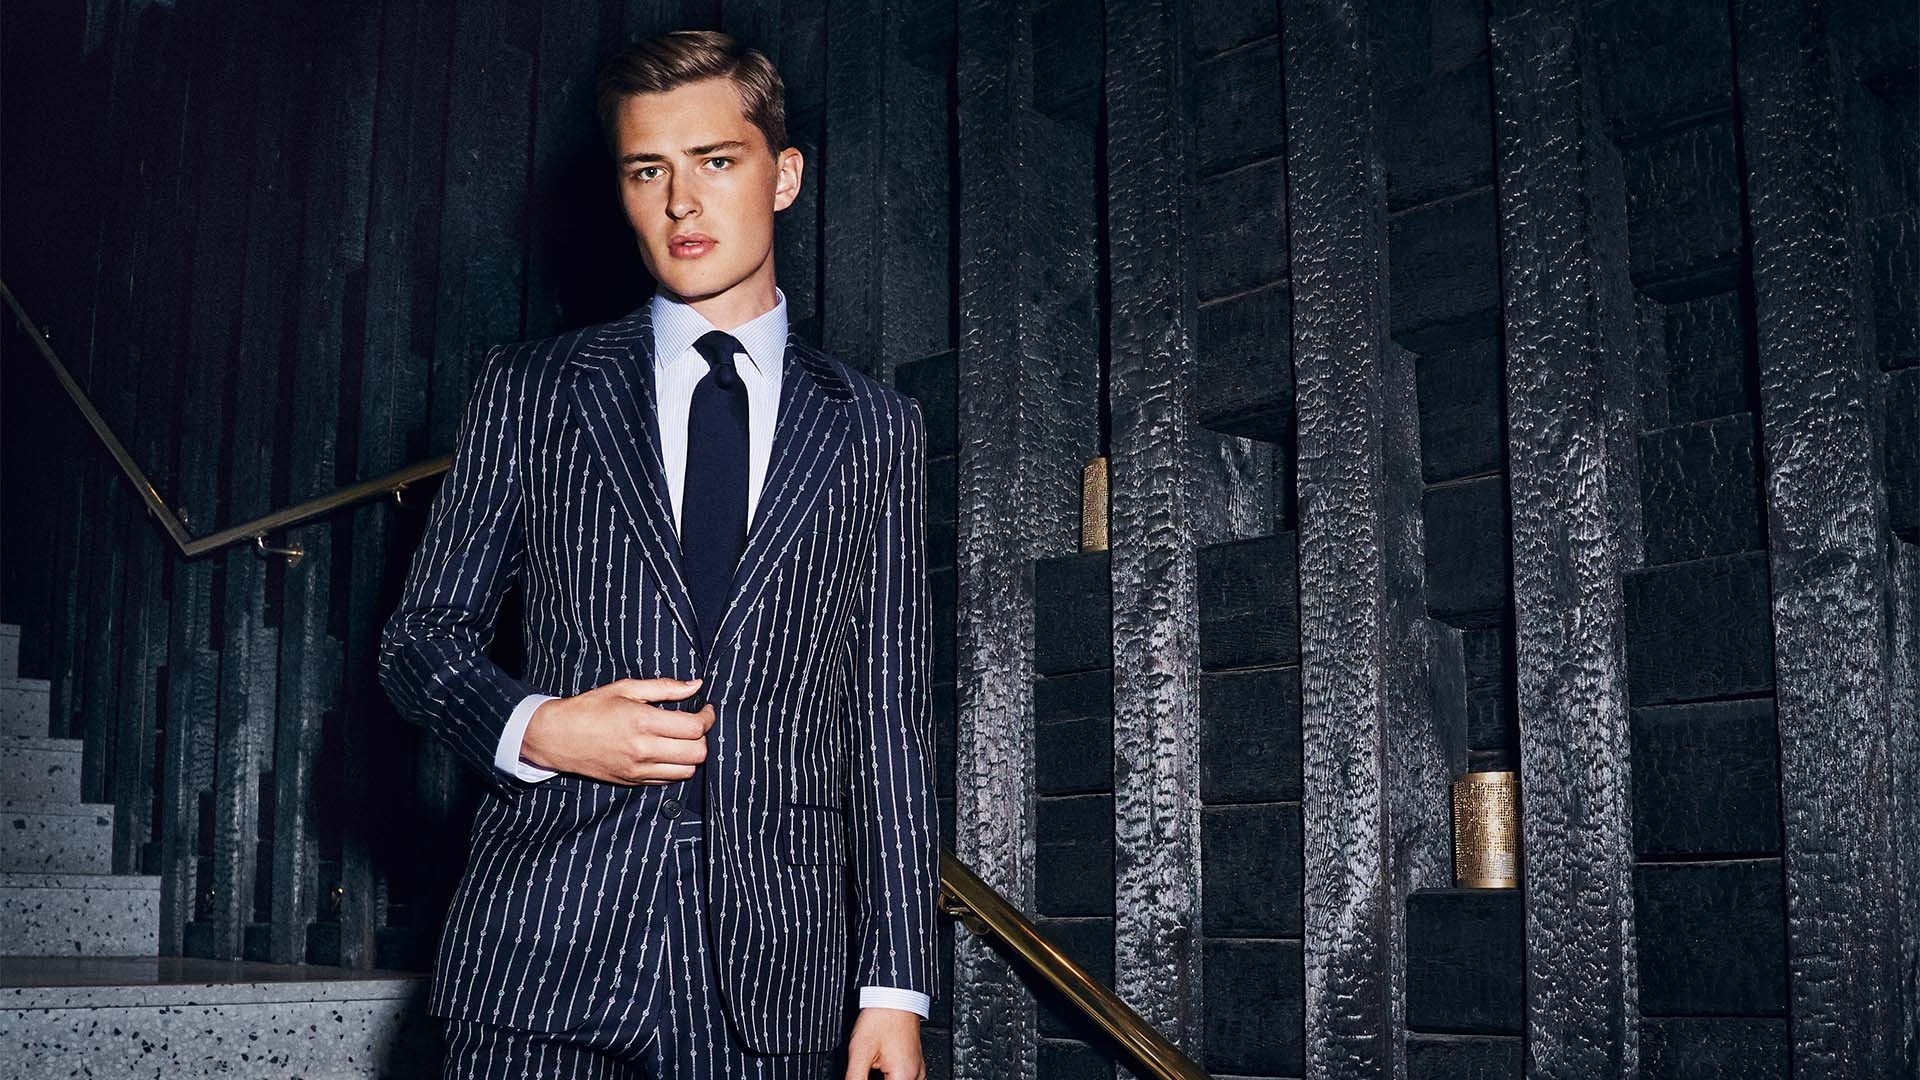 The pinstripe suit